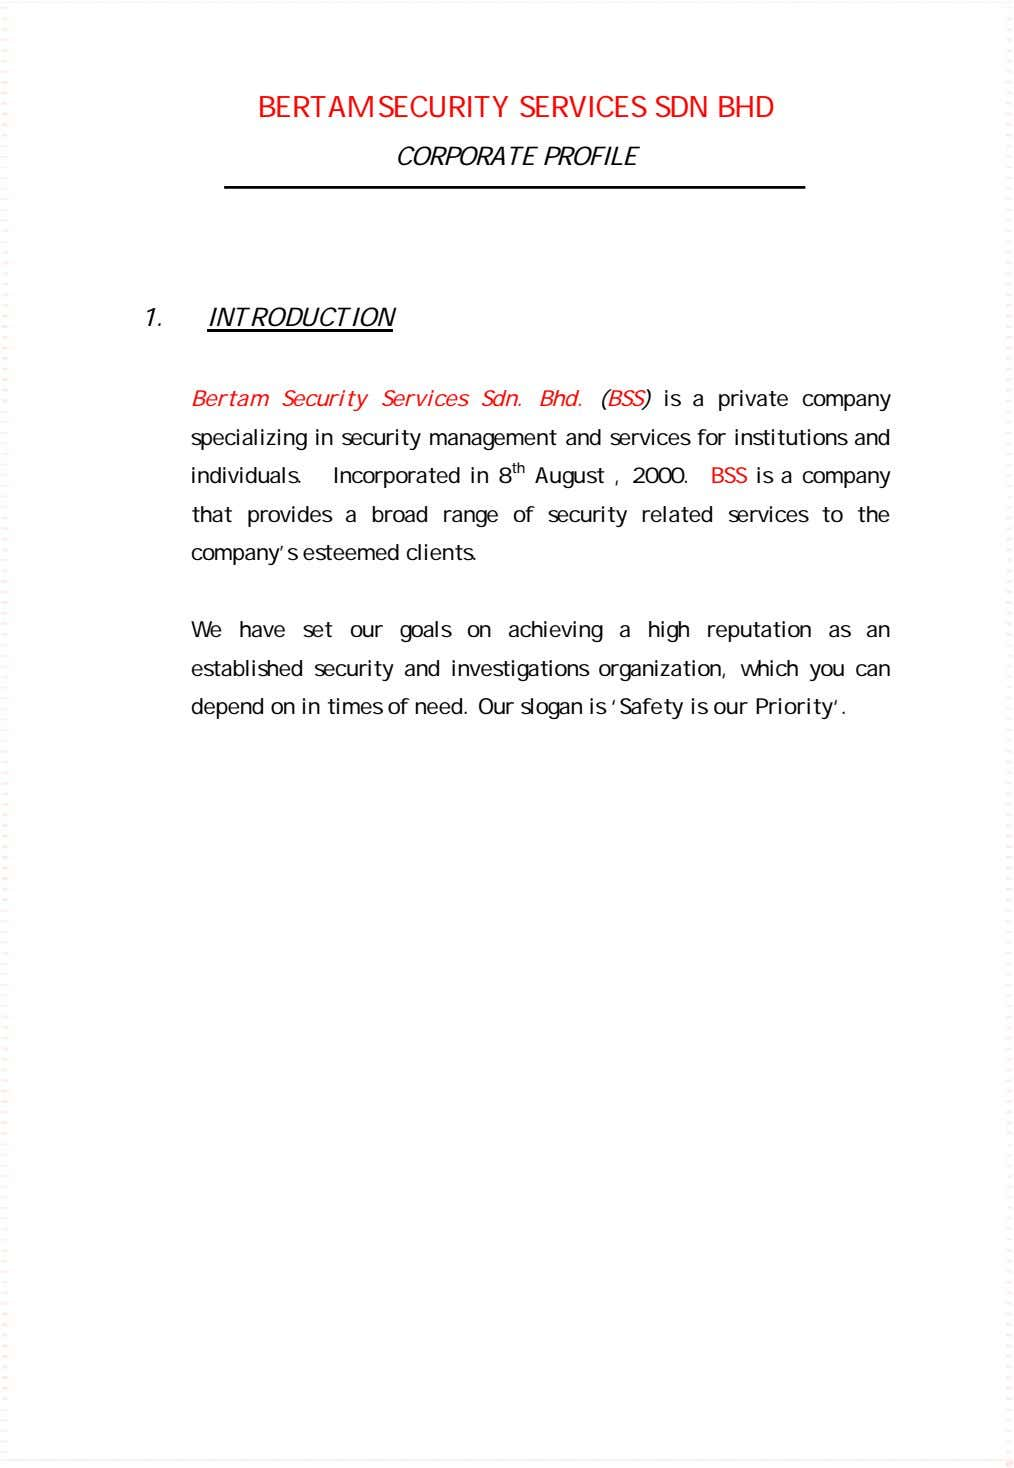 BERTAM SECURITY SERVICES SDN BHD CORPORATE PROFILE 1. INTRODUCTION Bertam Security Services Sdn. Bhd. (BSS)